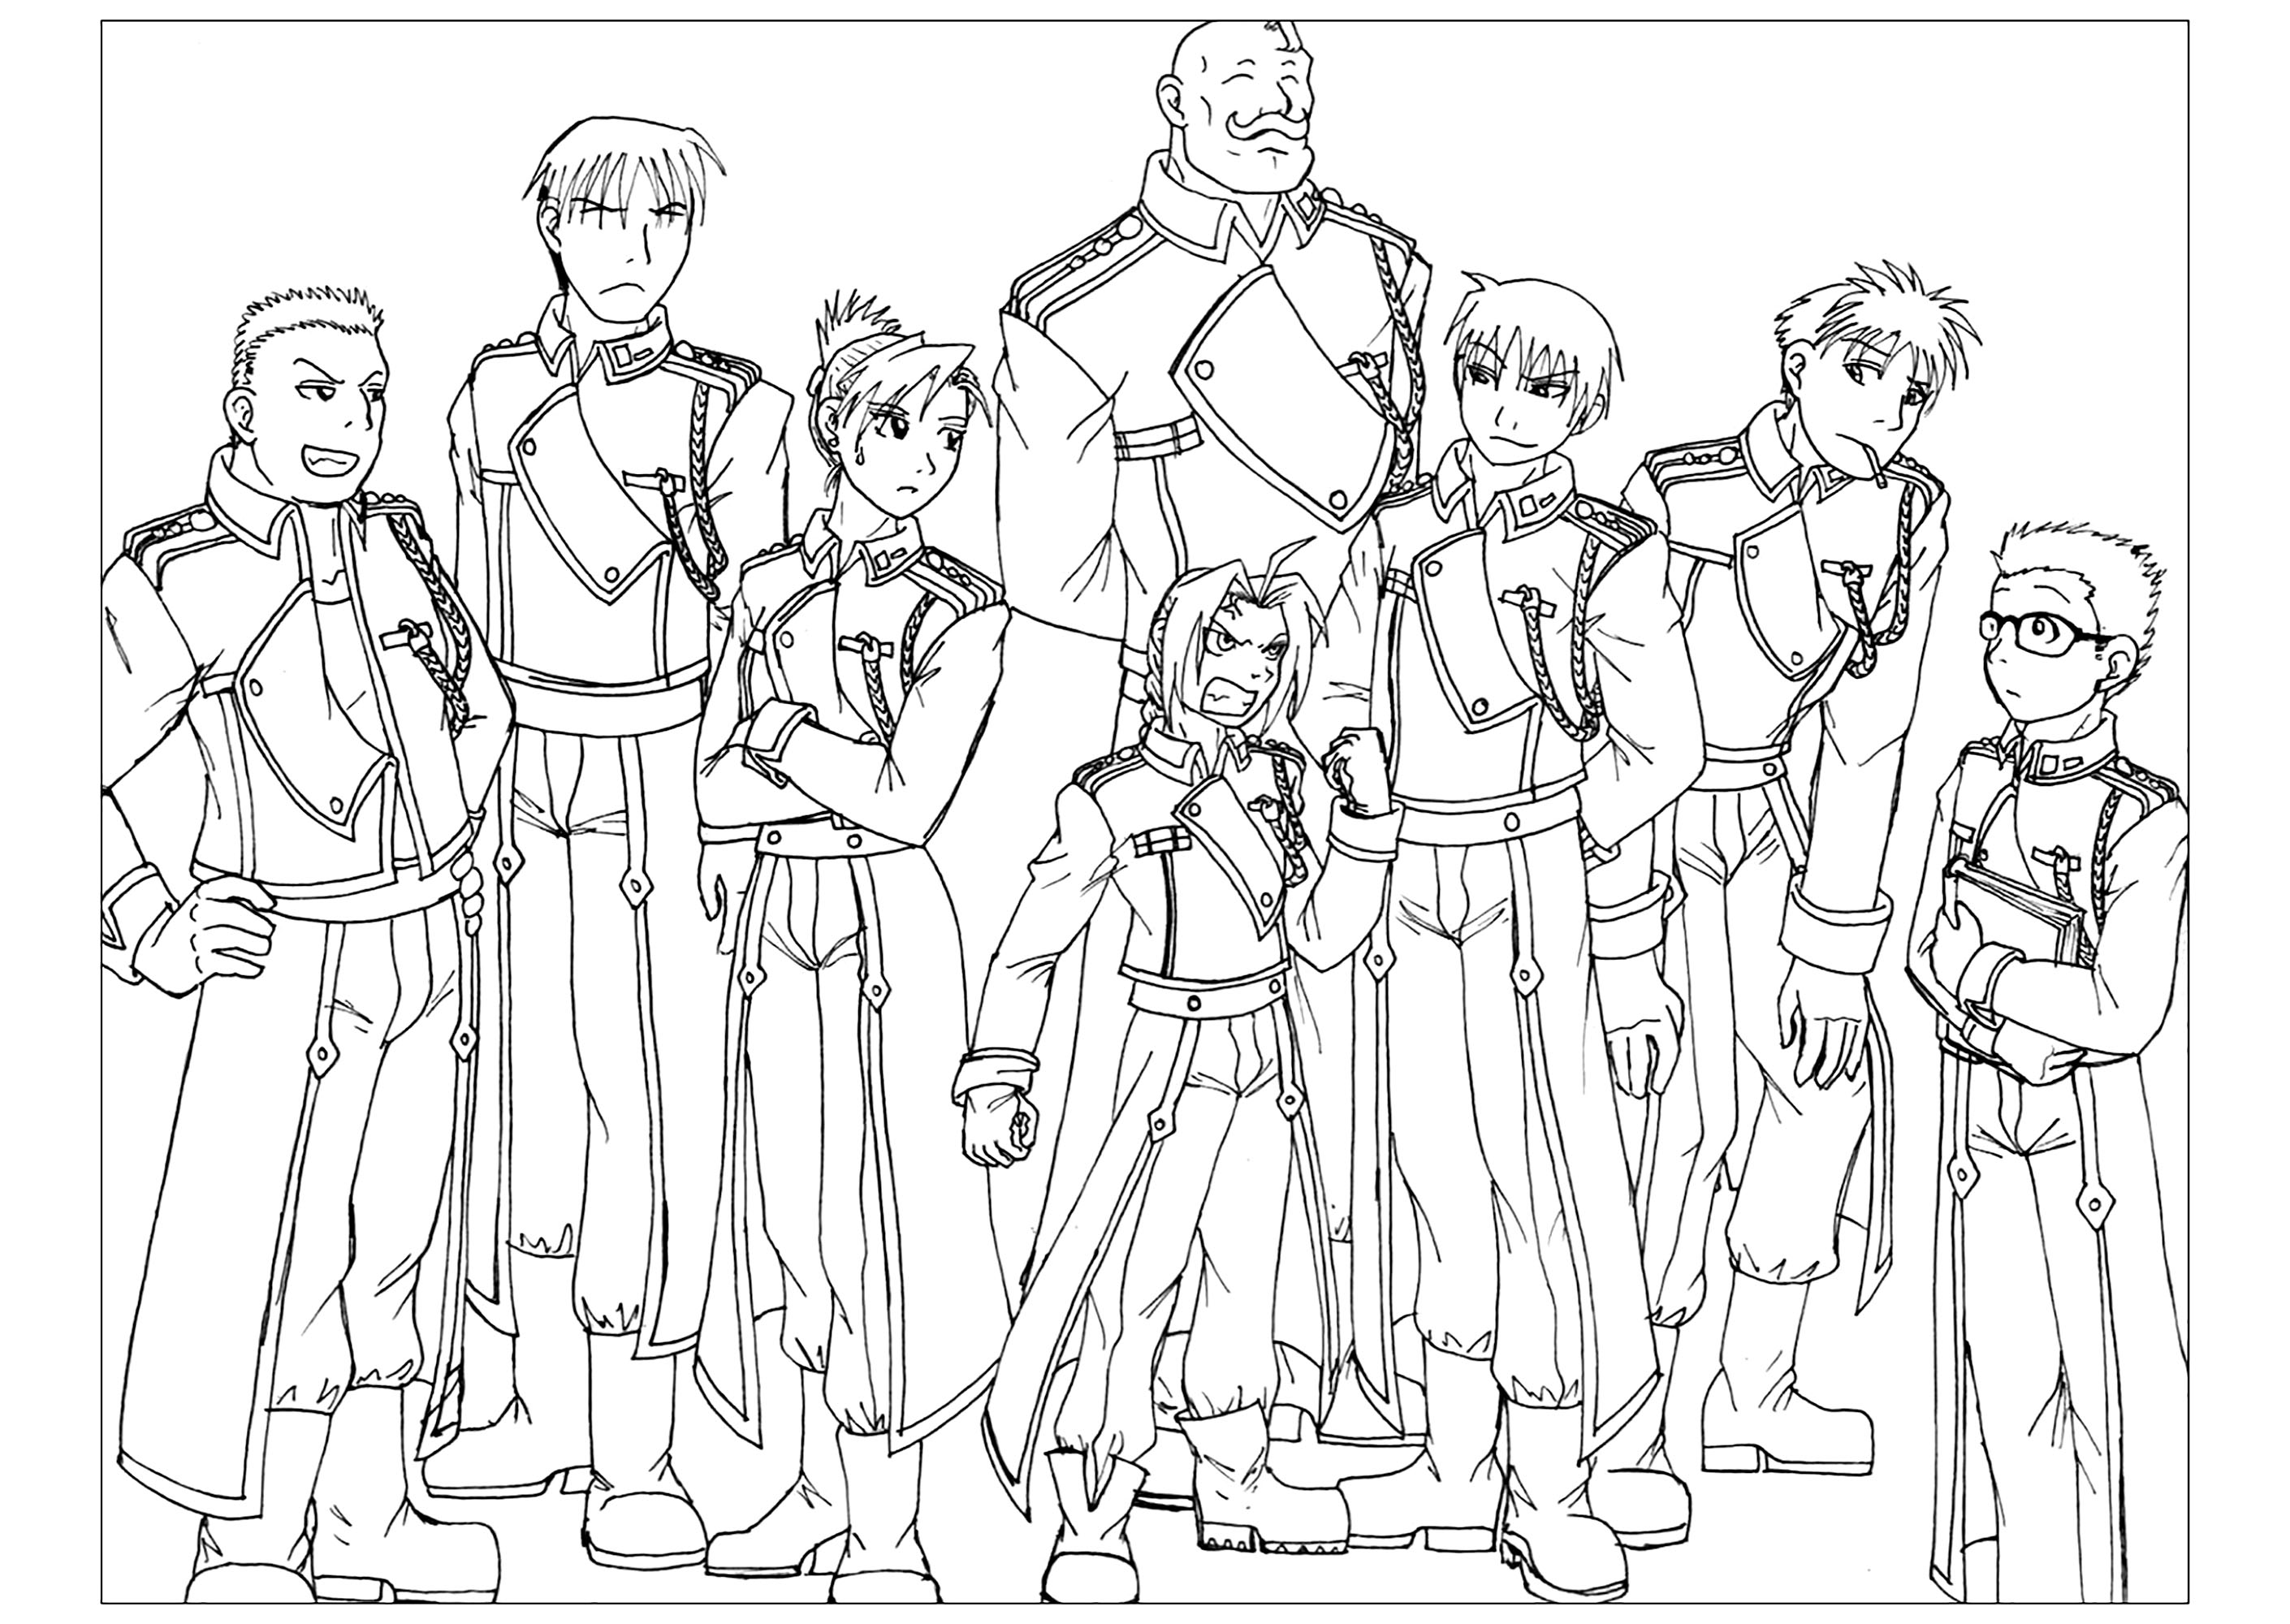 Simple Full Metal Alchemist coloring page to download for free